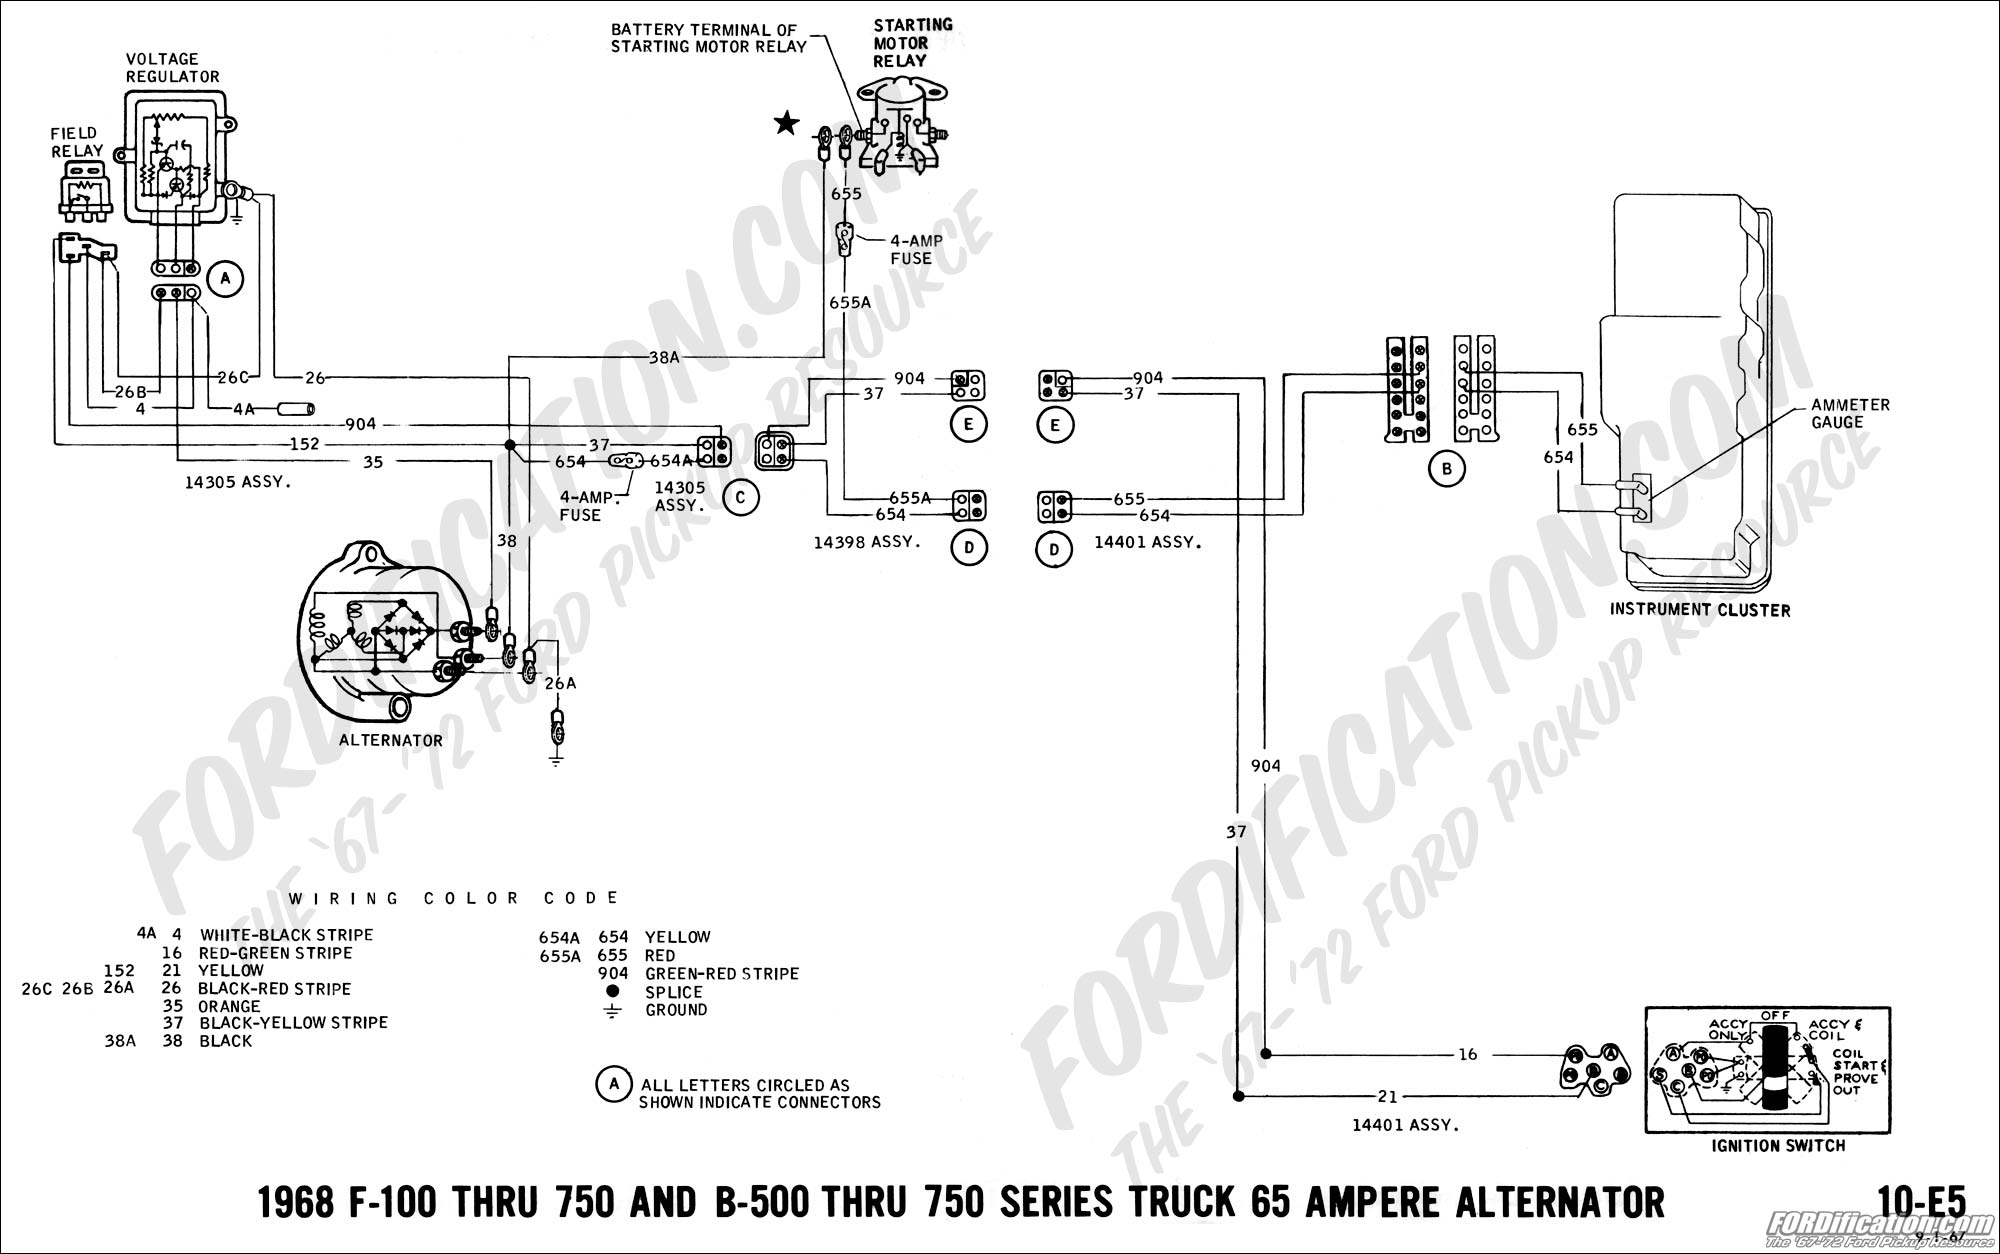 68 07 69 f100 wiring diagram 1973 ford f100 wiring diagram \u2022 wiring Ford Truck Wiring Diagrams at crackthecode.co